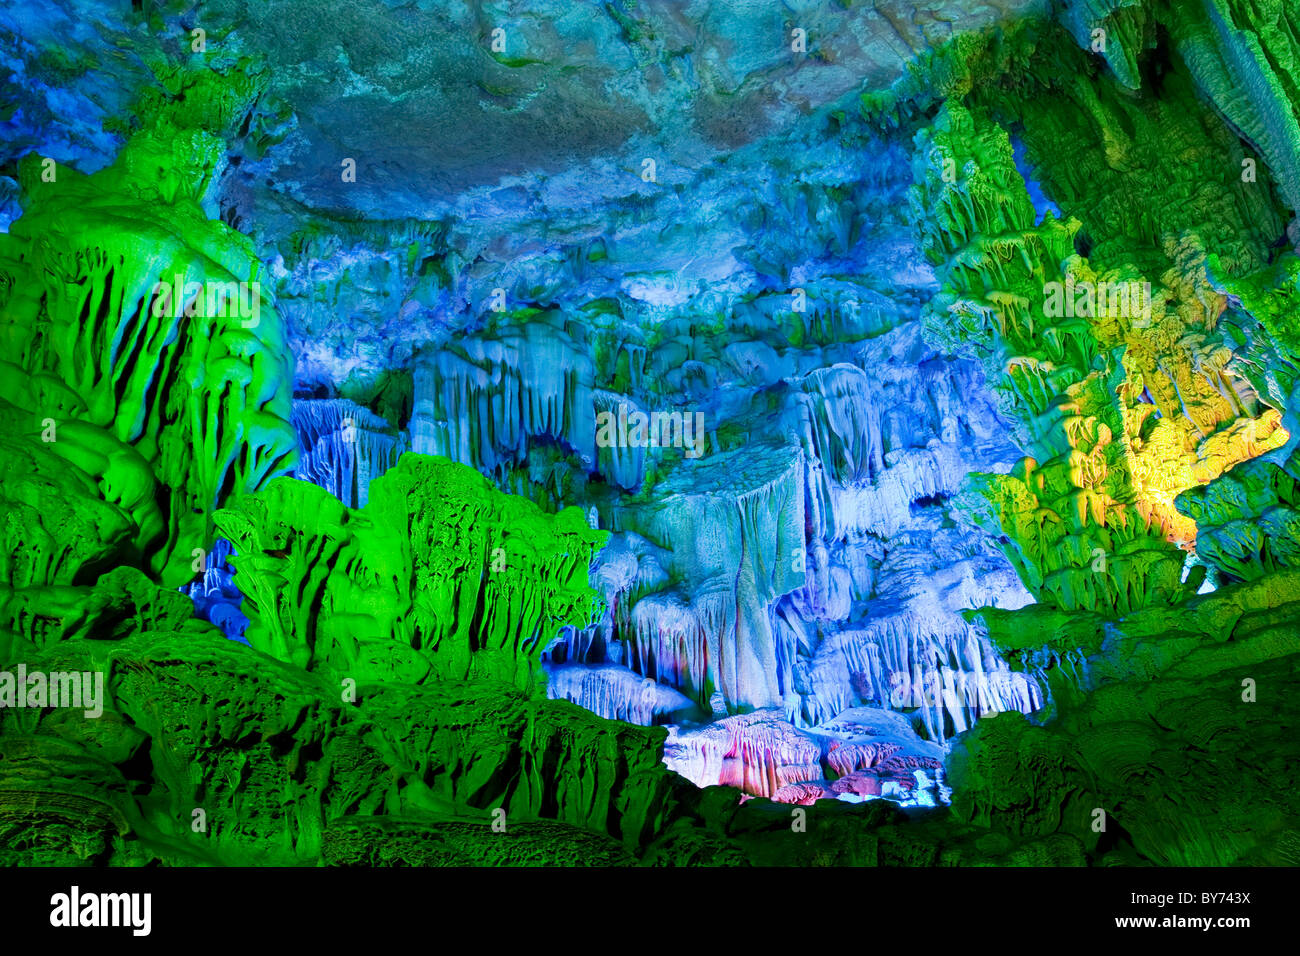 The beautifully illuminated Reed Flute Caves located in Guilin, Guangxi Province, China - Stock Image